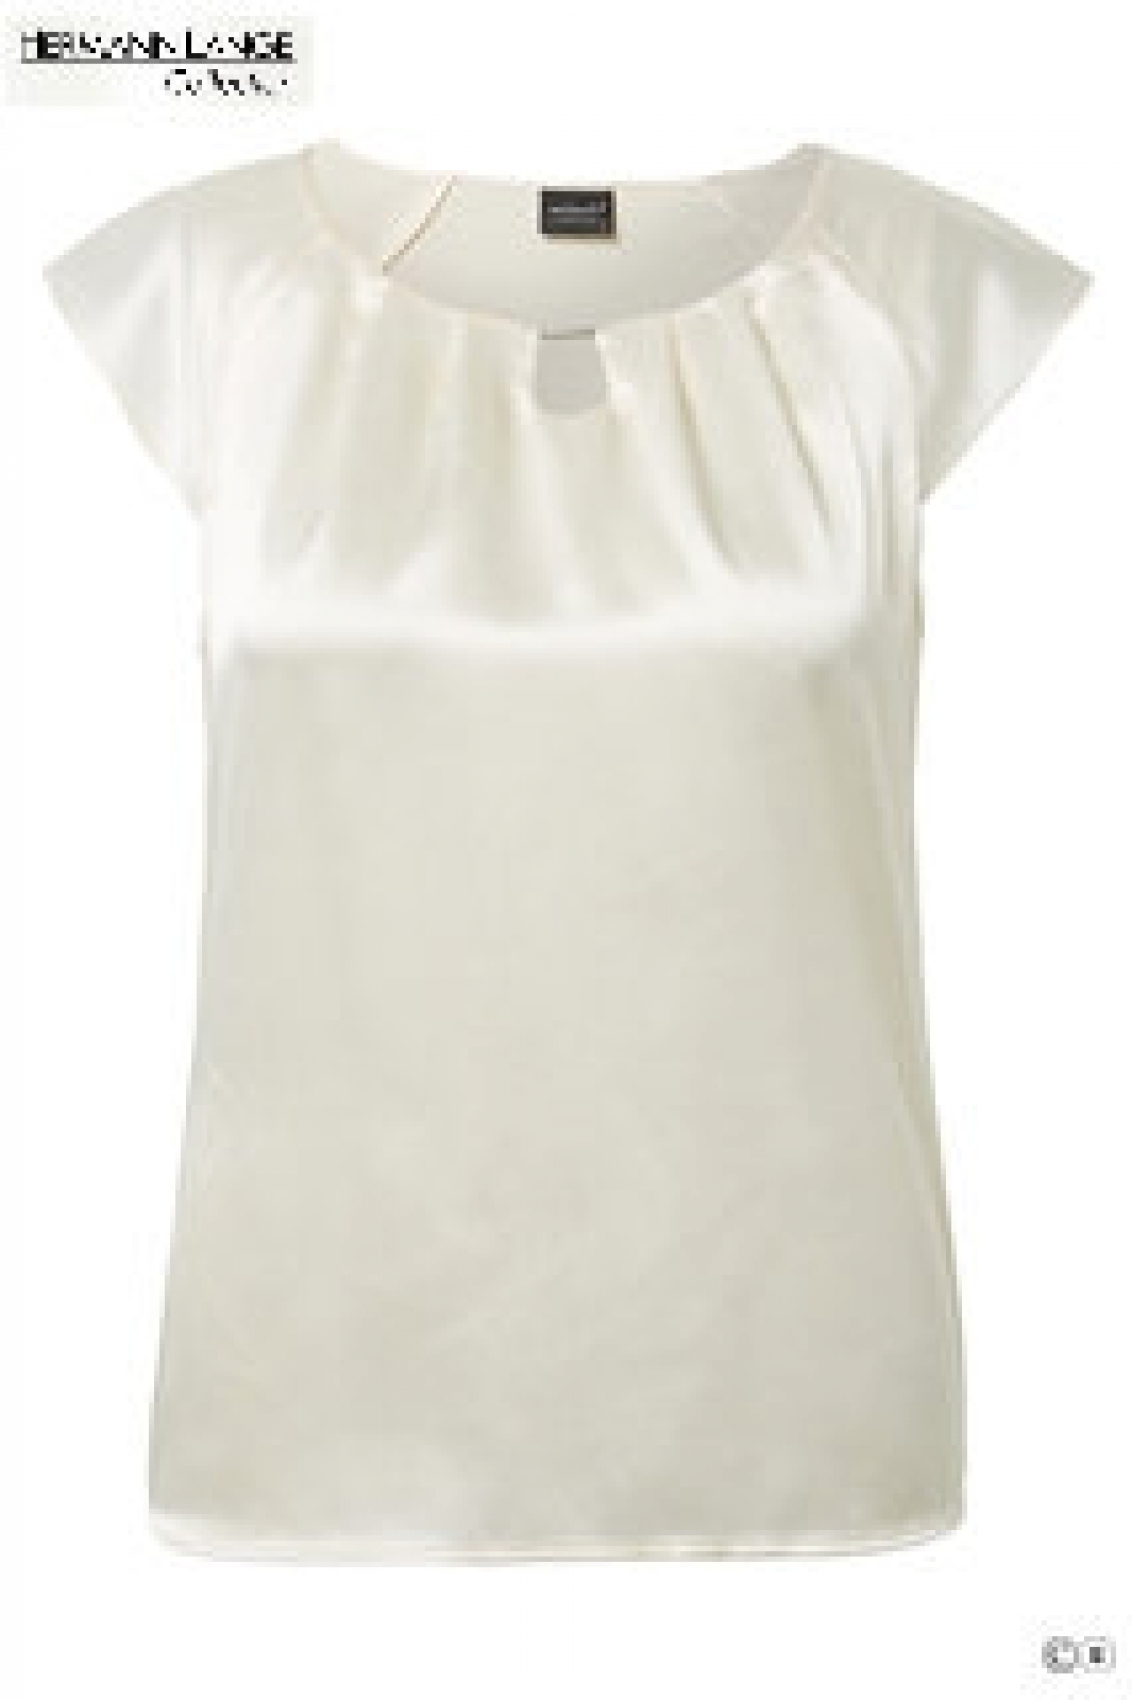 Hermann Lange Top/Shirt 6060-1200